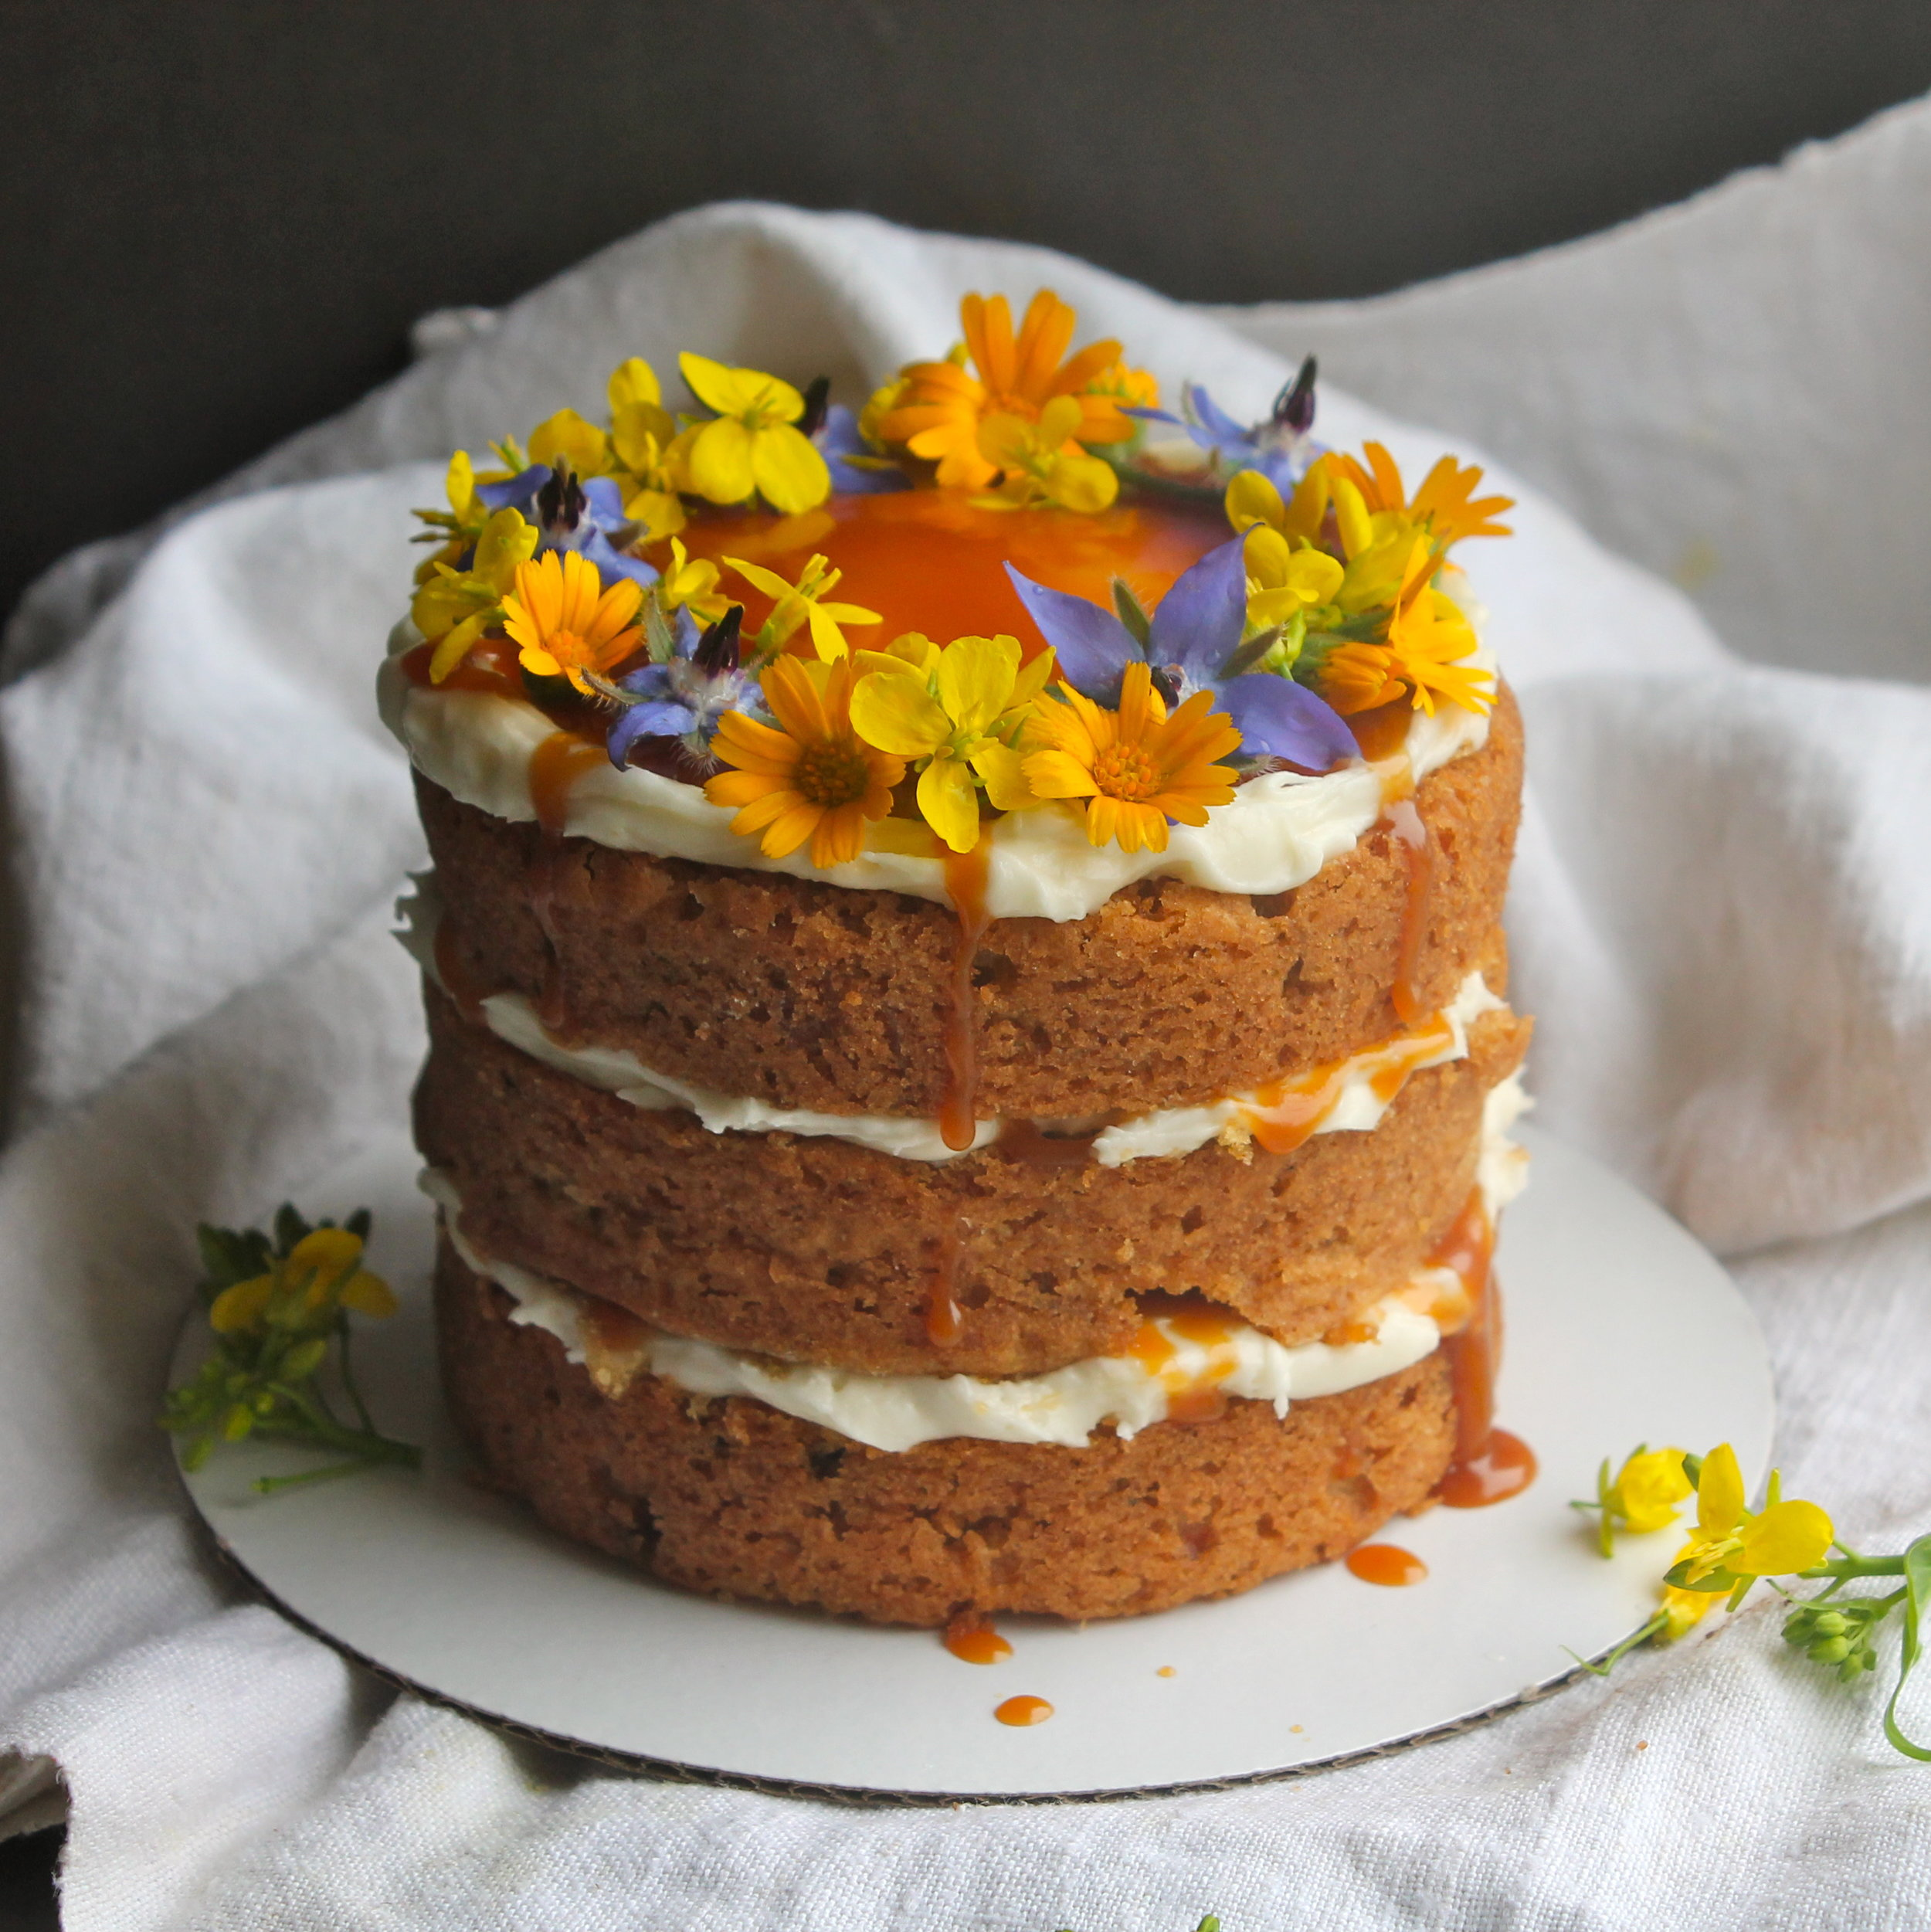 Edible Flower baby naked cake with salted caramel drips by Cake Bloom